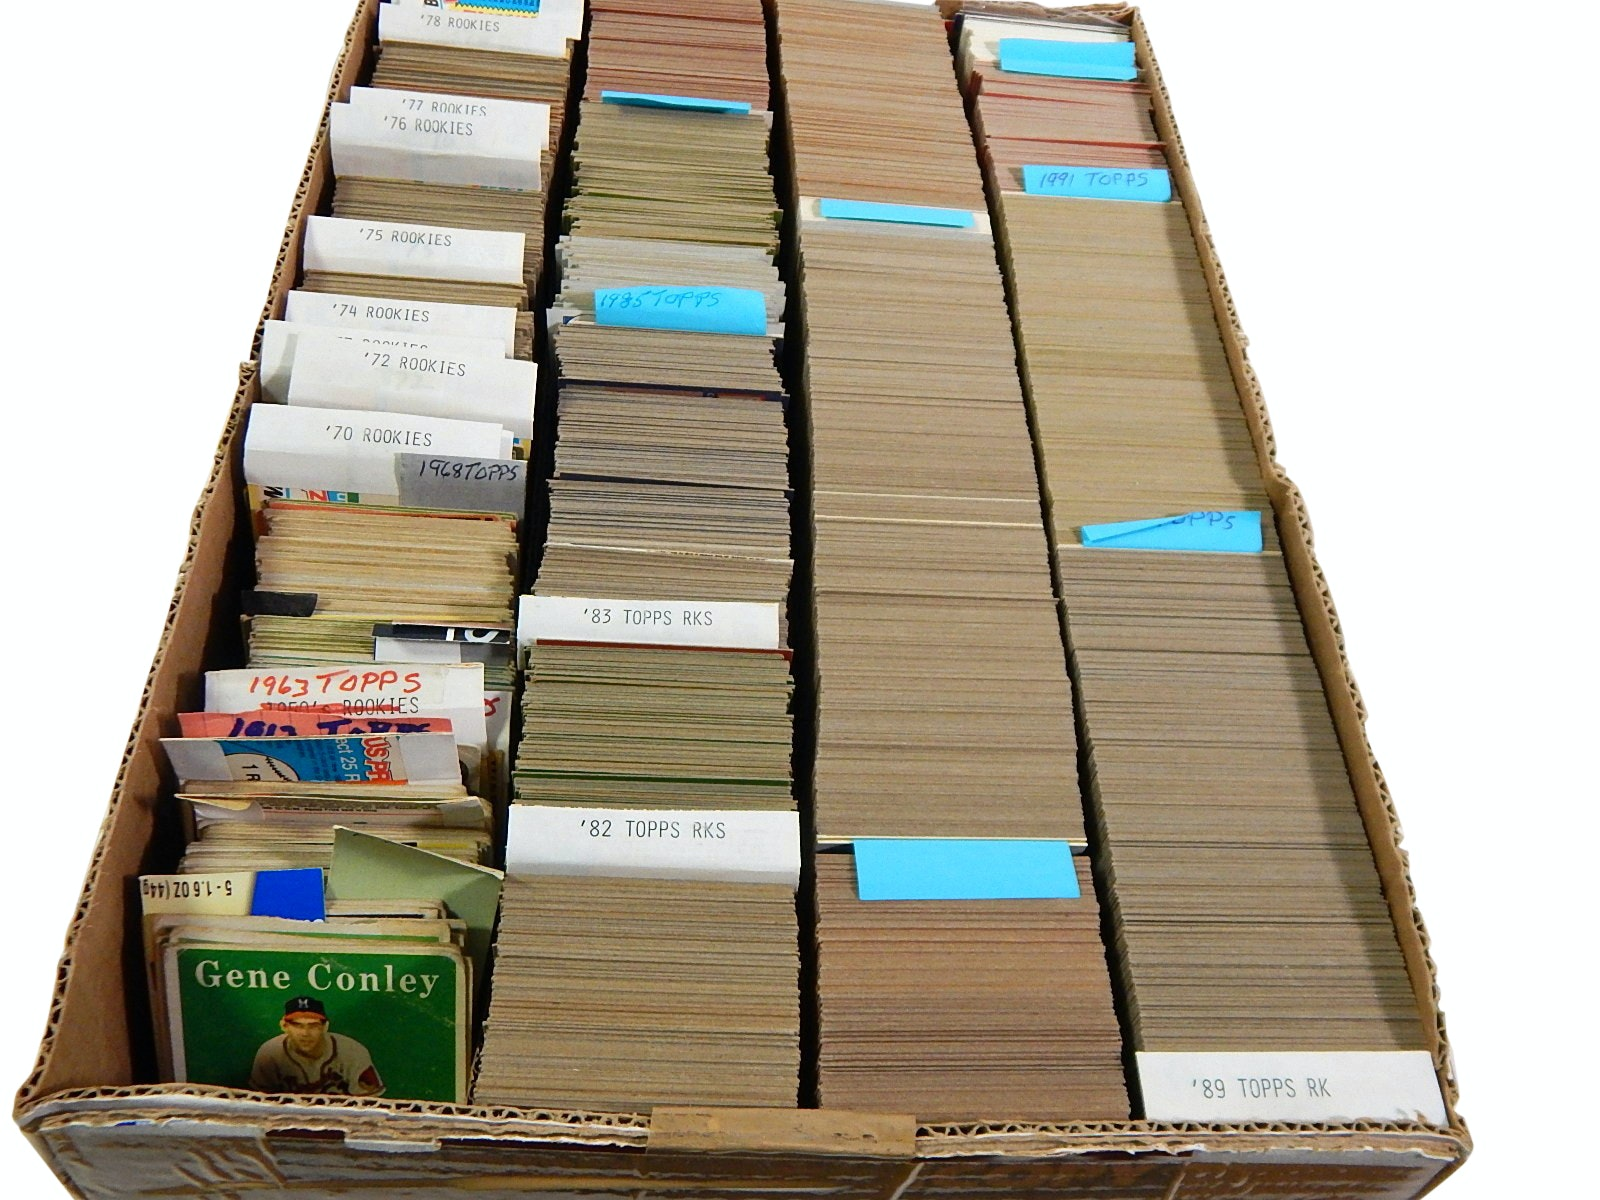 1958 to 1991 Baseball Cards with Rookies, Stars including Clemente, Koufax